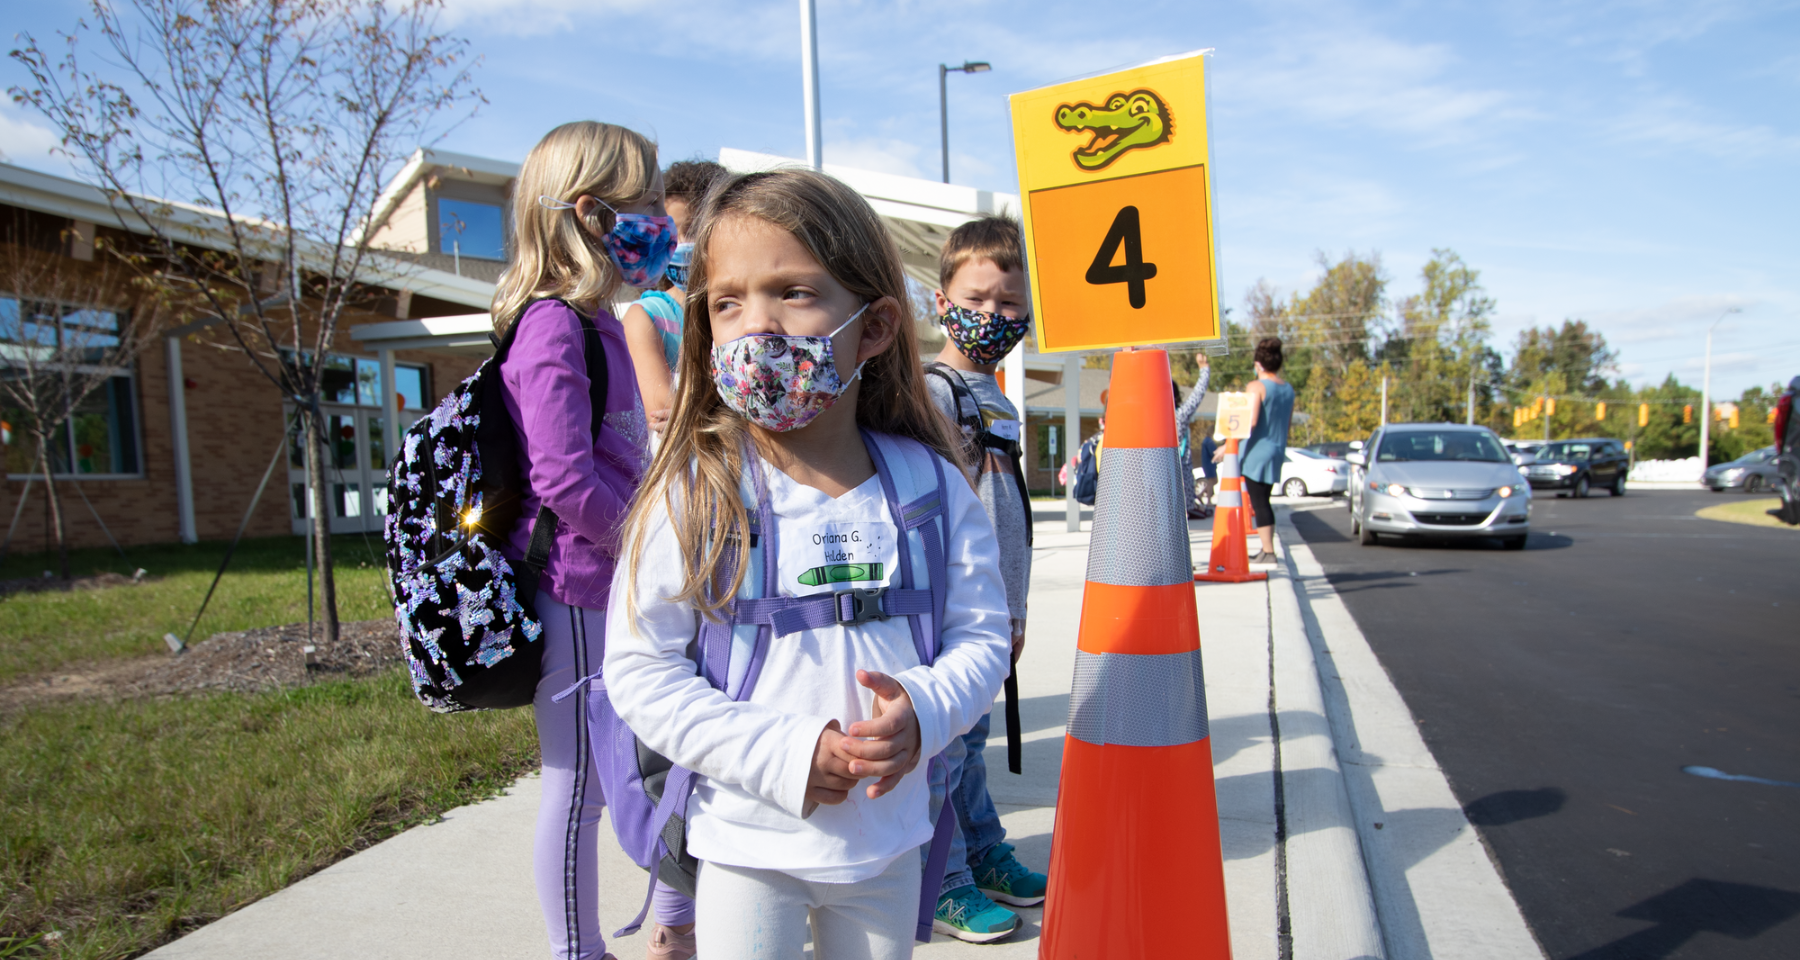 Students, staff prioritizing health, safety during Plan B shift